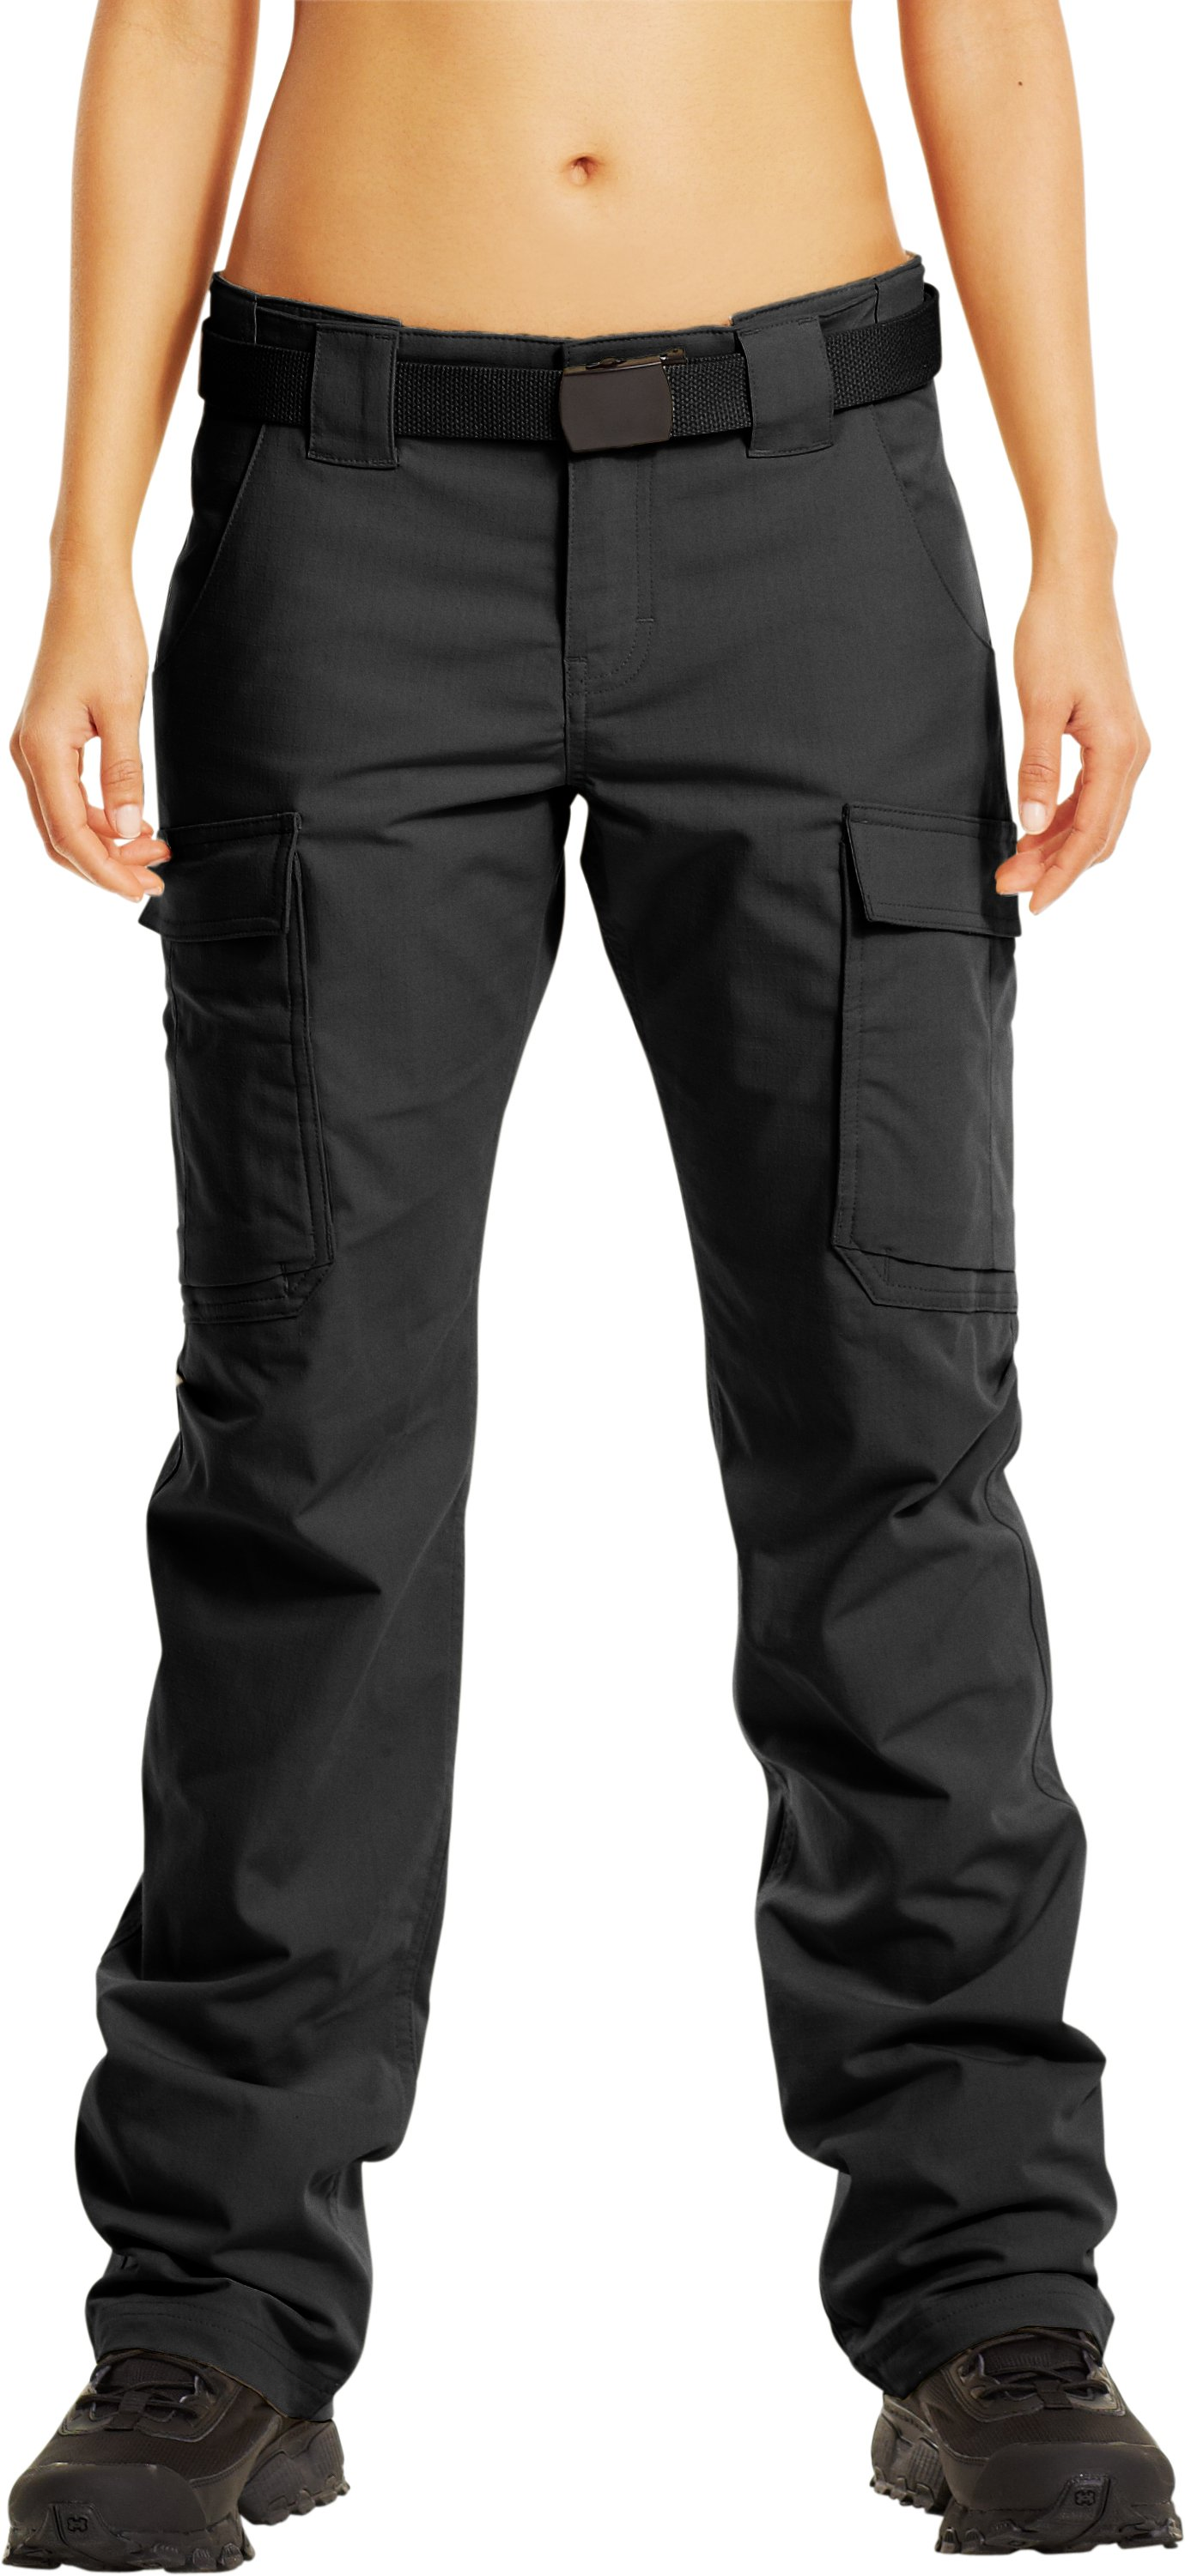 Women's Tactical Duty Pants, Black